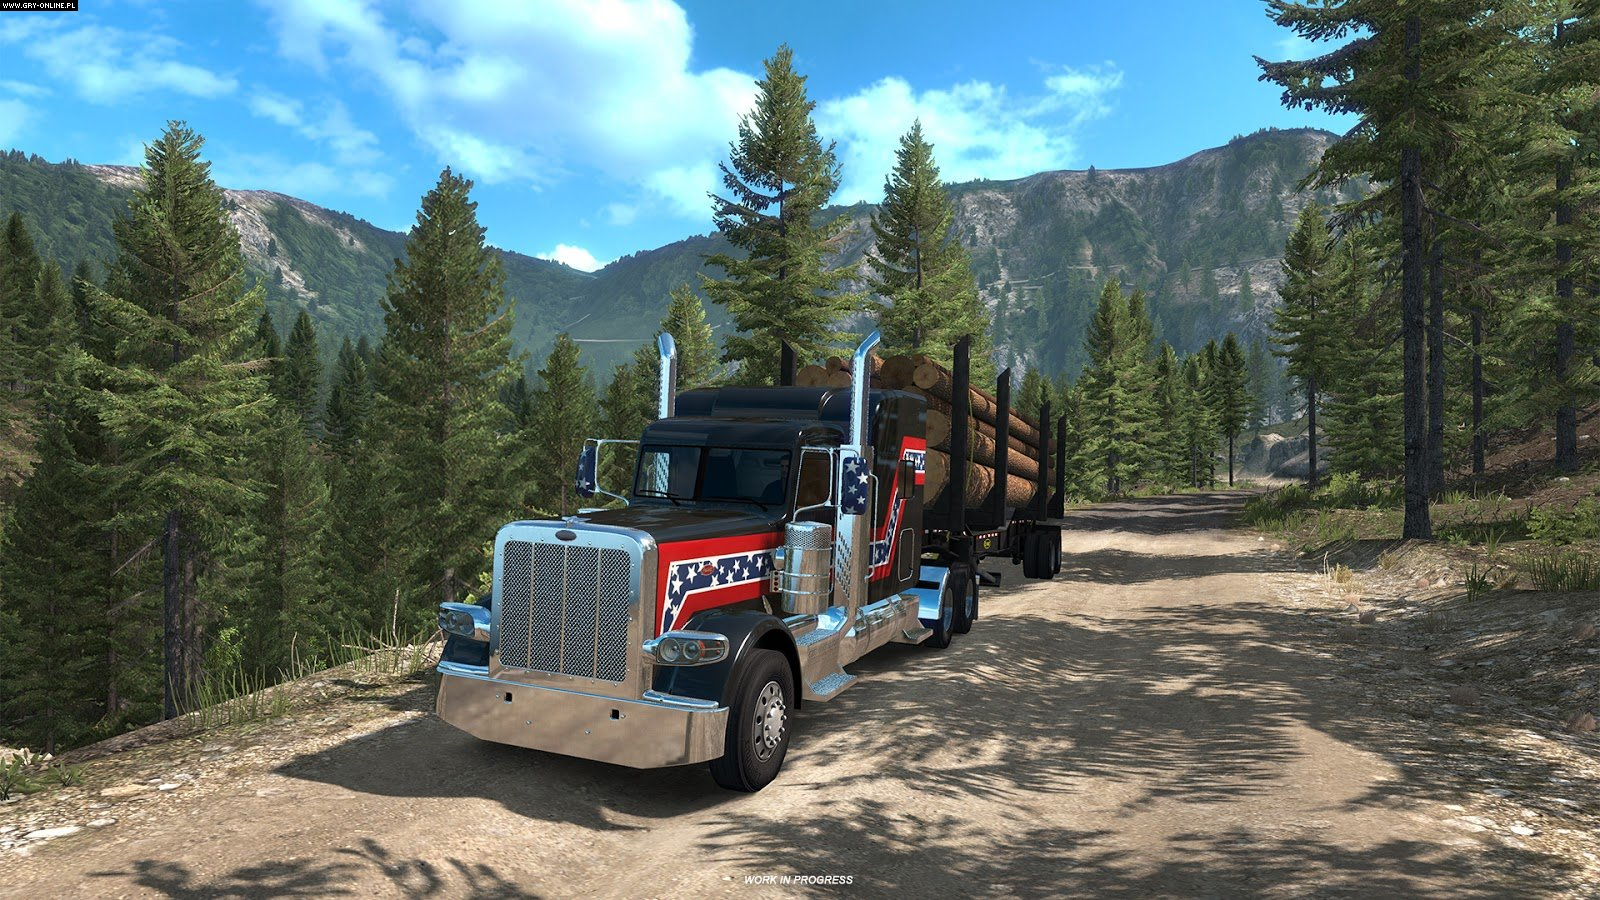 American Truck Simulator: Washington PC Games Image 5/8, SCS Software